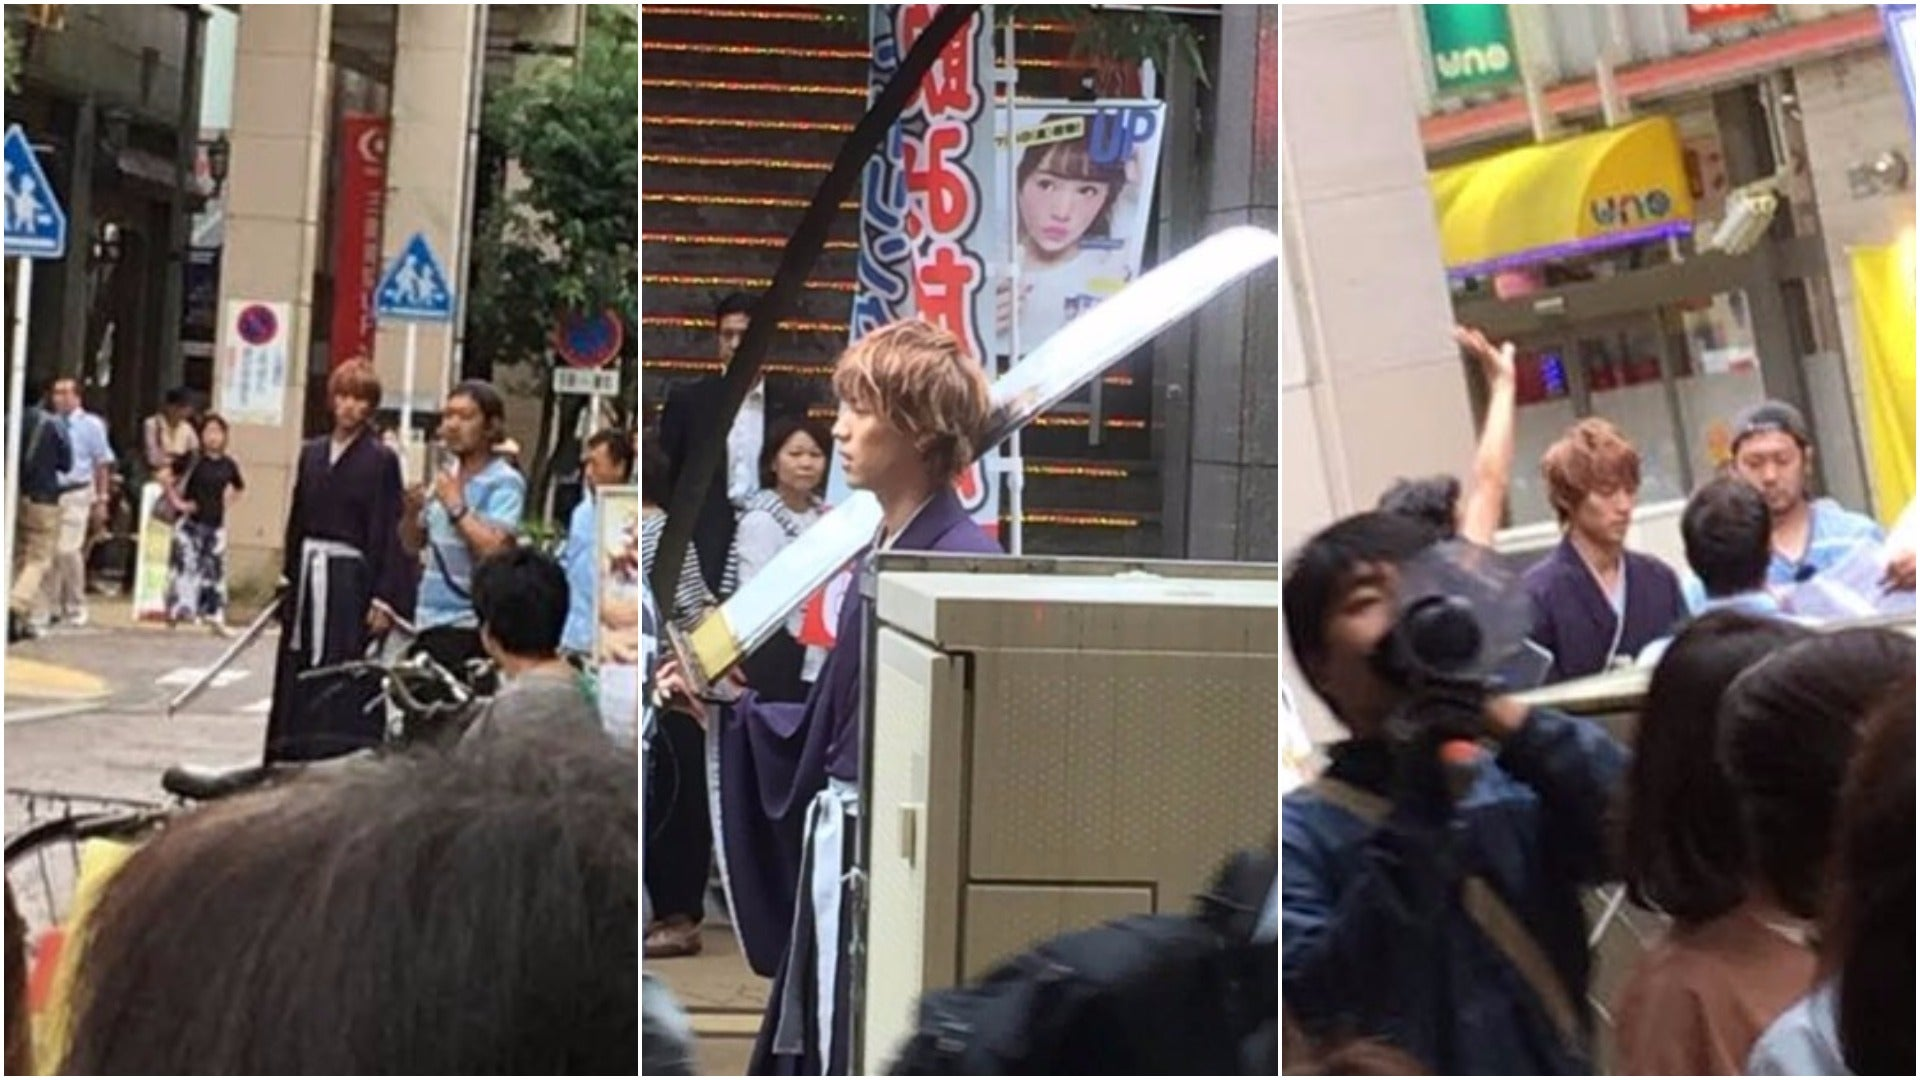 The First Photos Of The Live-Action Bleach Movie Shoot